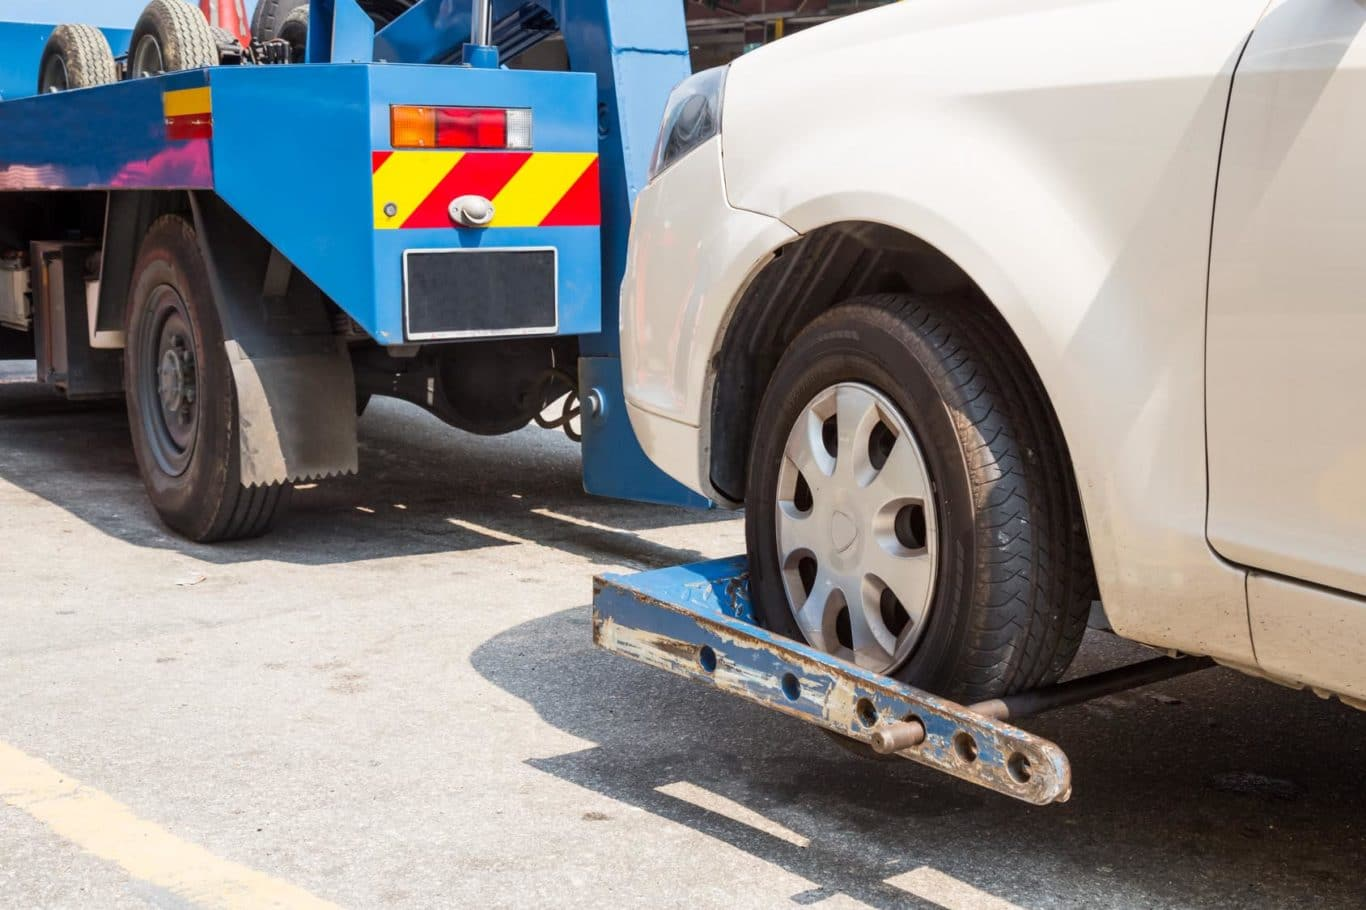 Knockananna expert Car Towing services